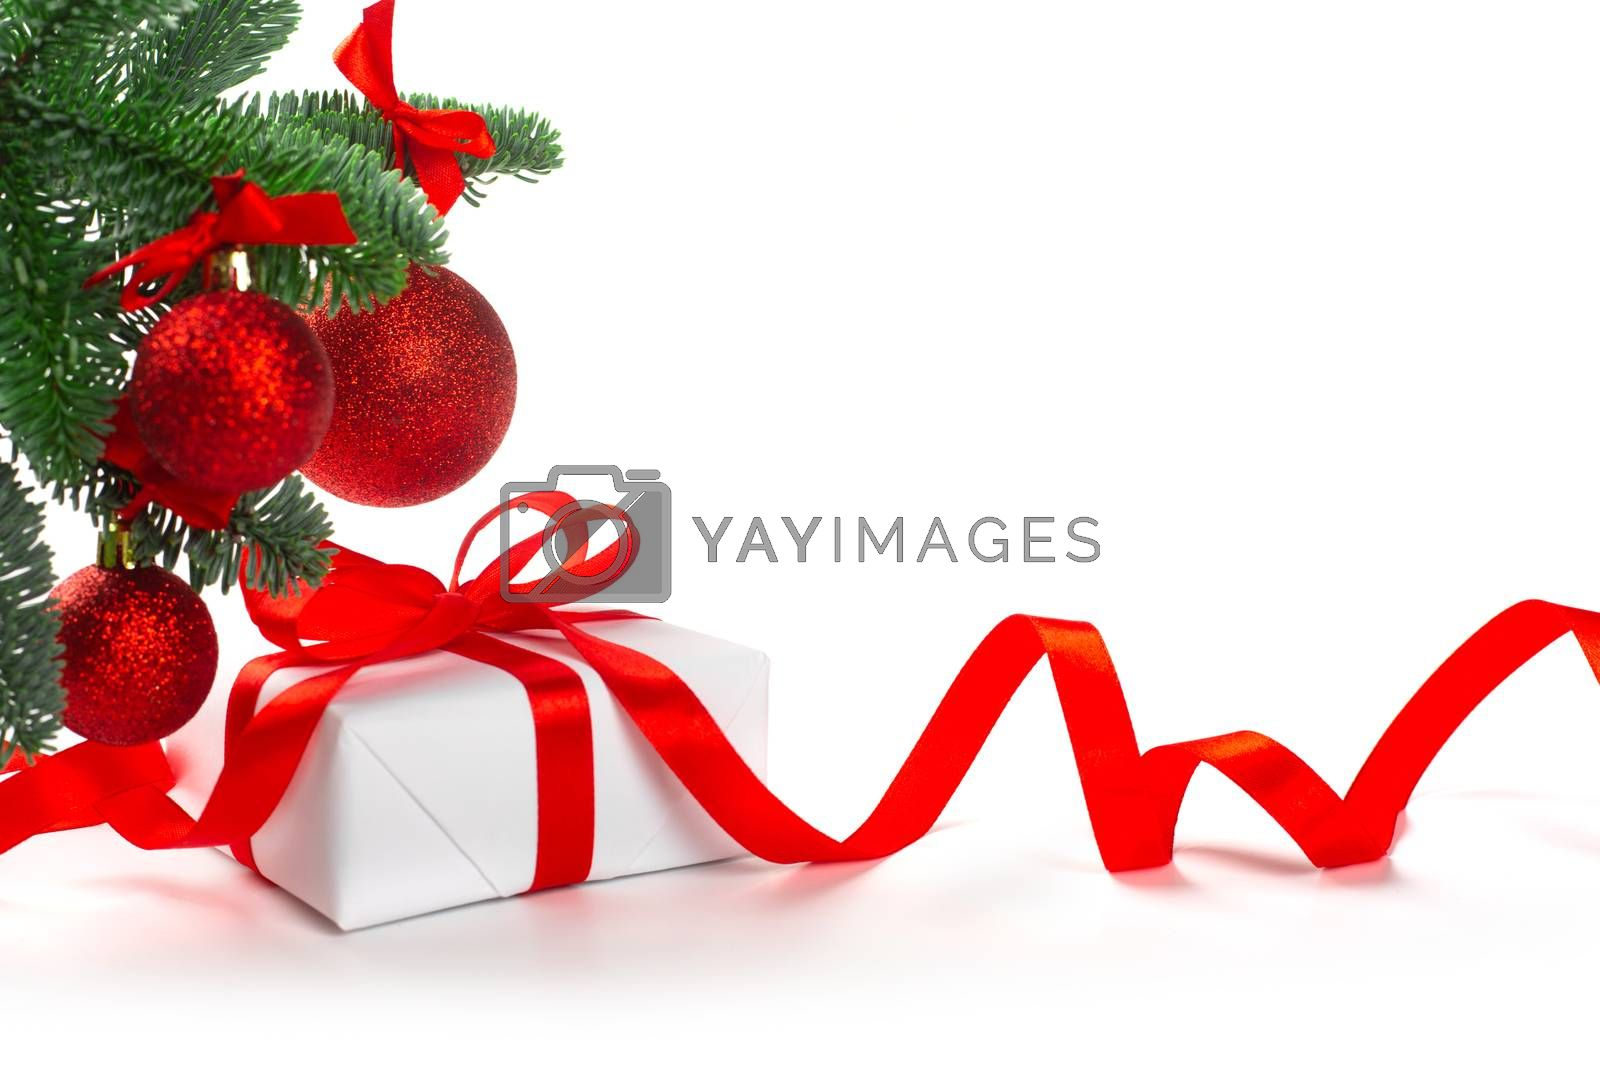 White holiday present gift box with red satin bow and curly ribbon under Christmas tree with baubles, border frame design isolated on white background